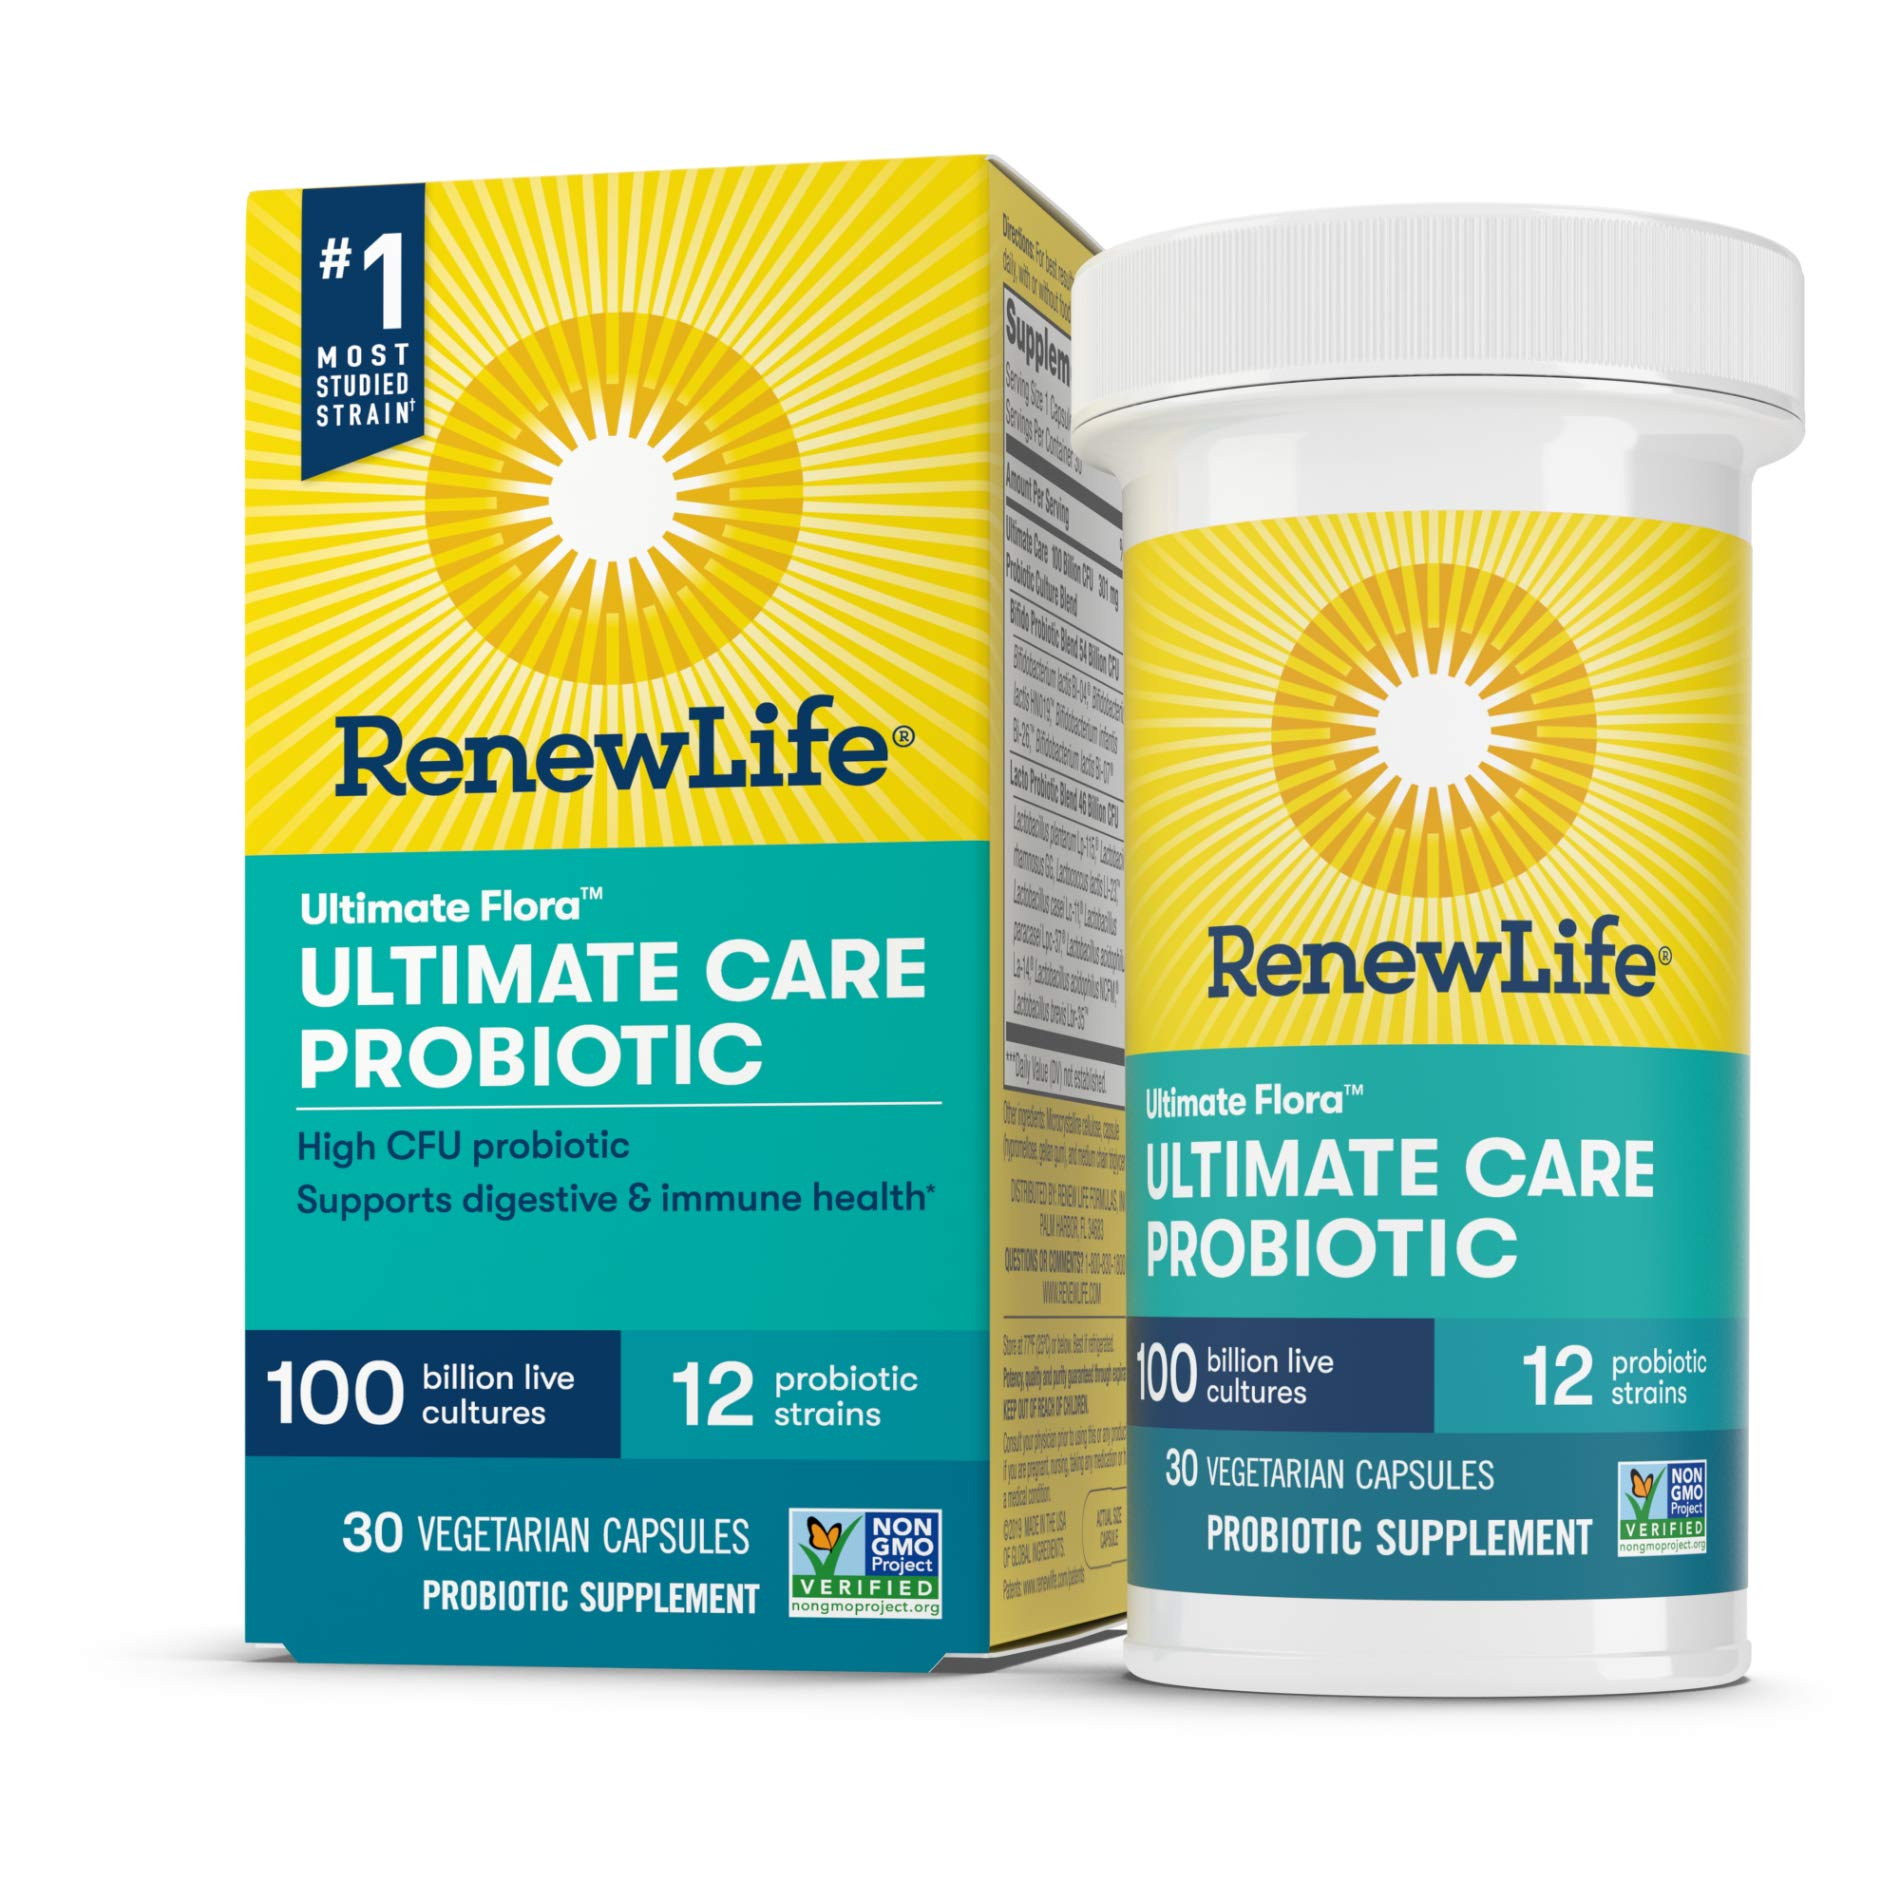 Renew Life Adult Probiotic - Ultimate Flora Ultimate Care Probiotic Supplement - Gluten, Dairy & Soy Free - 100 Billion CFU - 30 Vegetarian Capsules